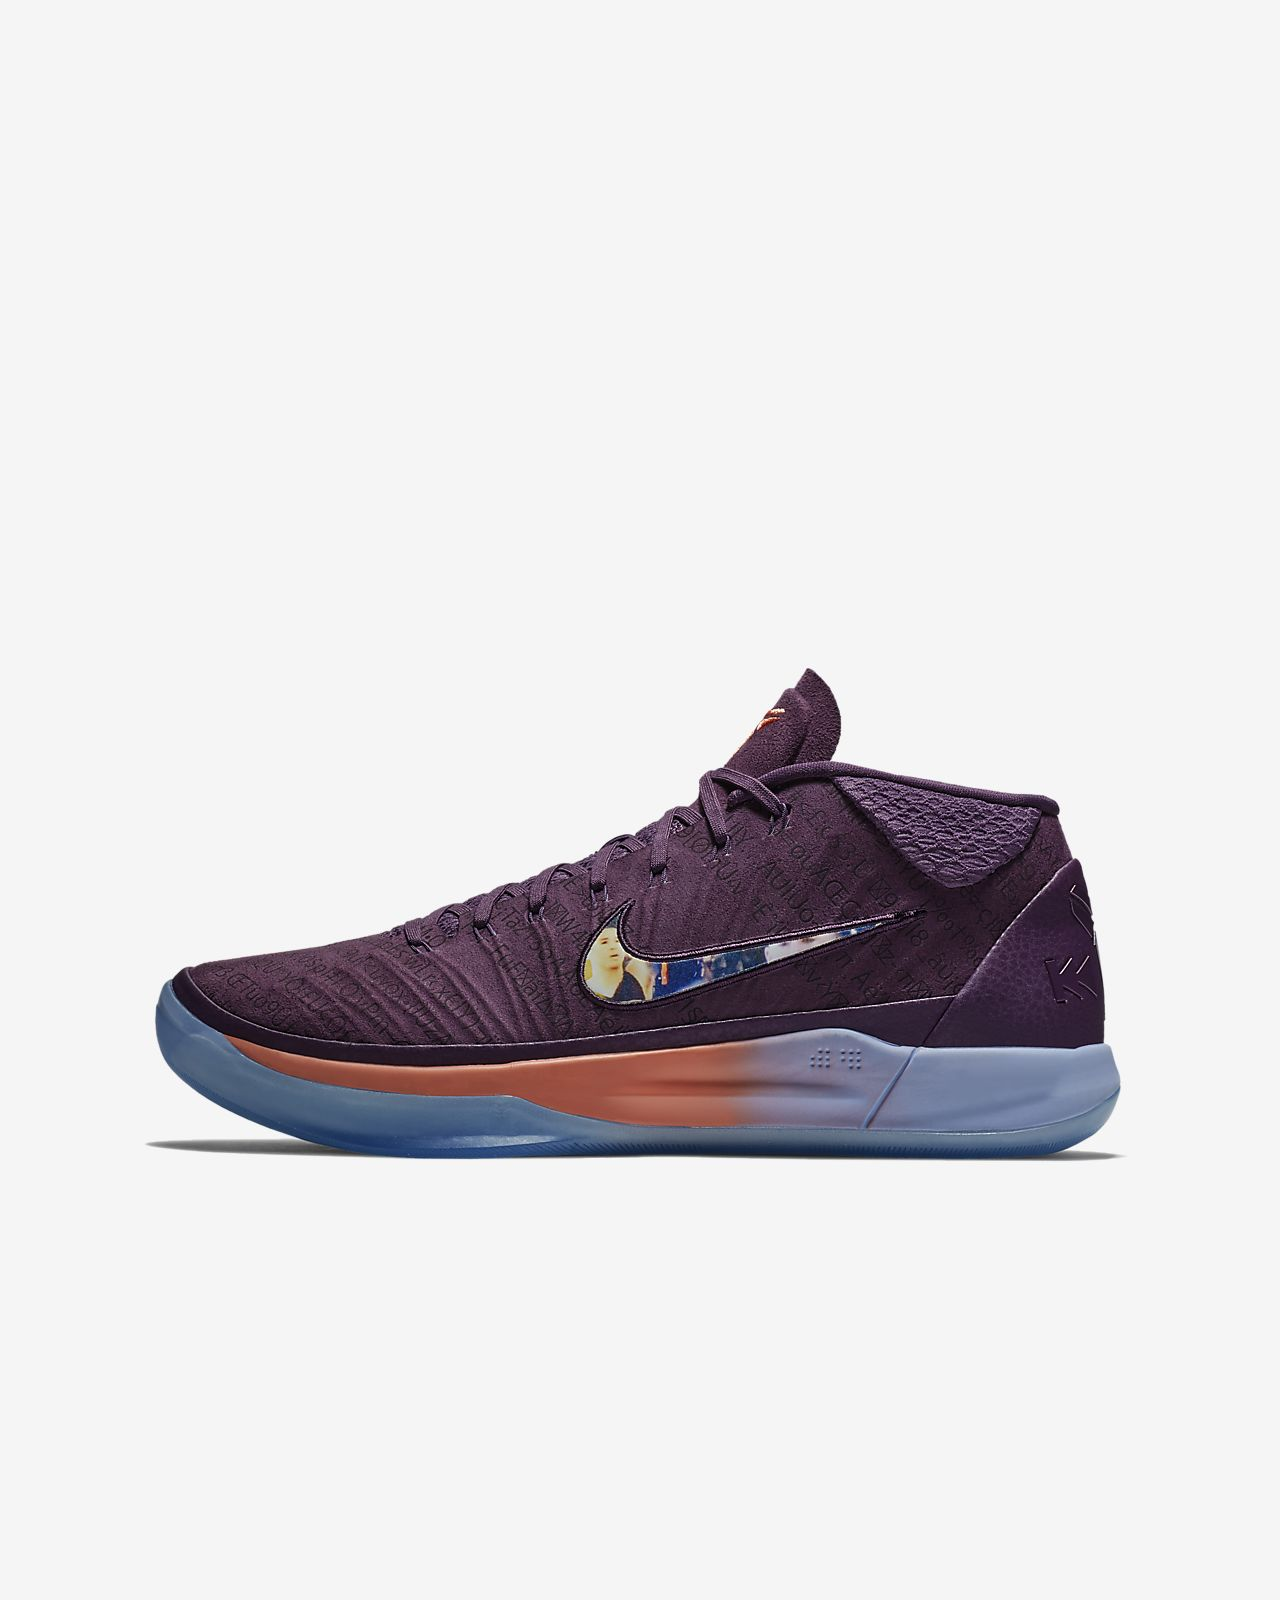 ... Nike Kobe A.D. Booker PE Basketball Shoe